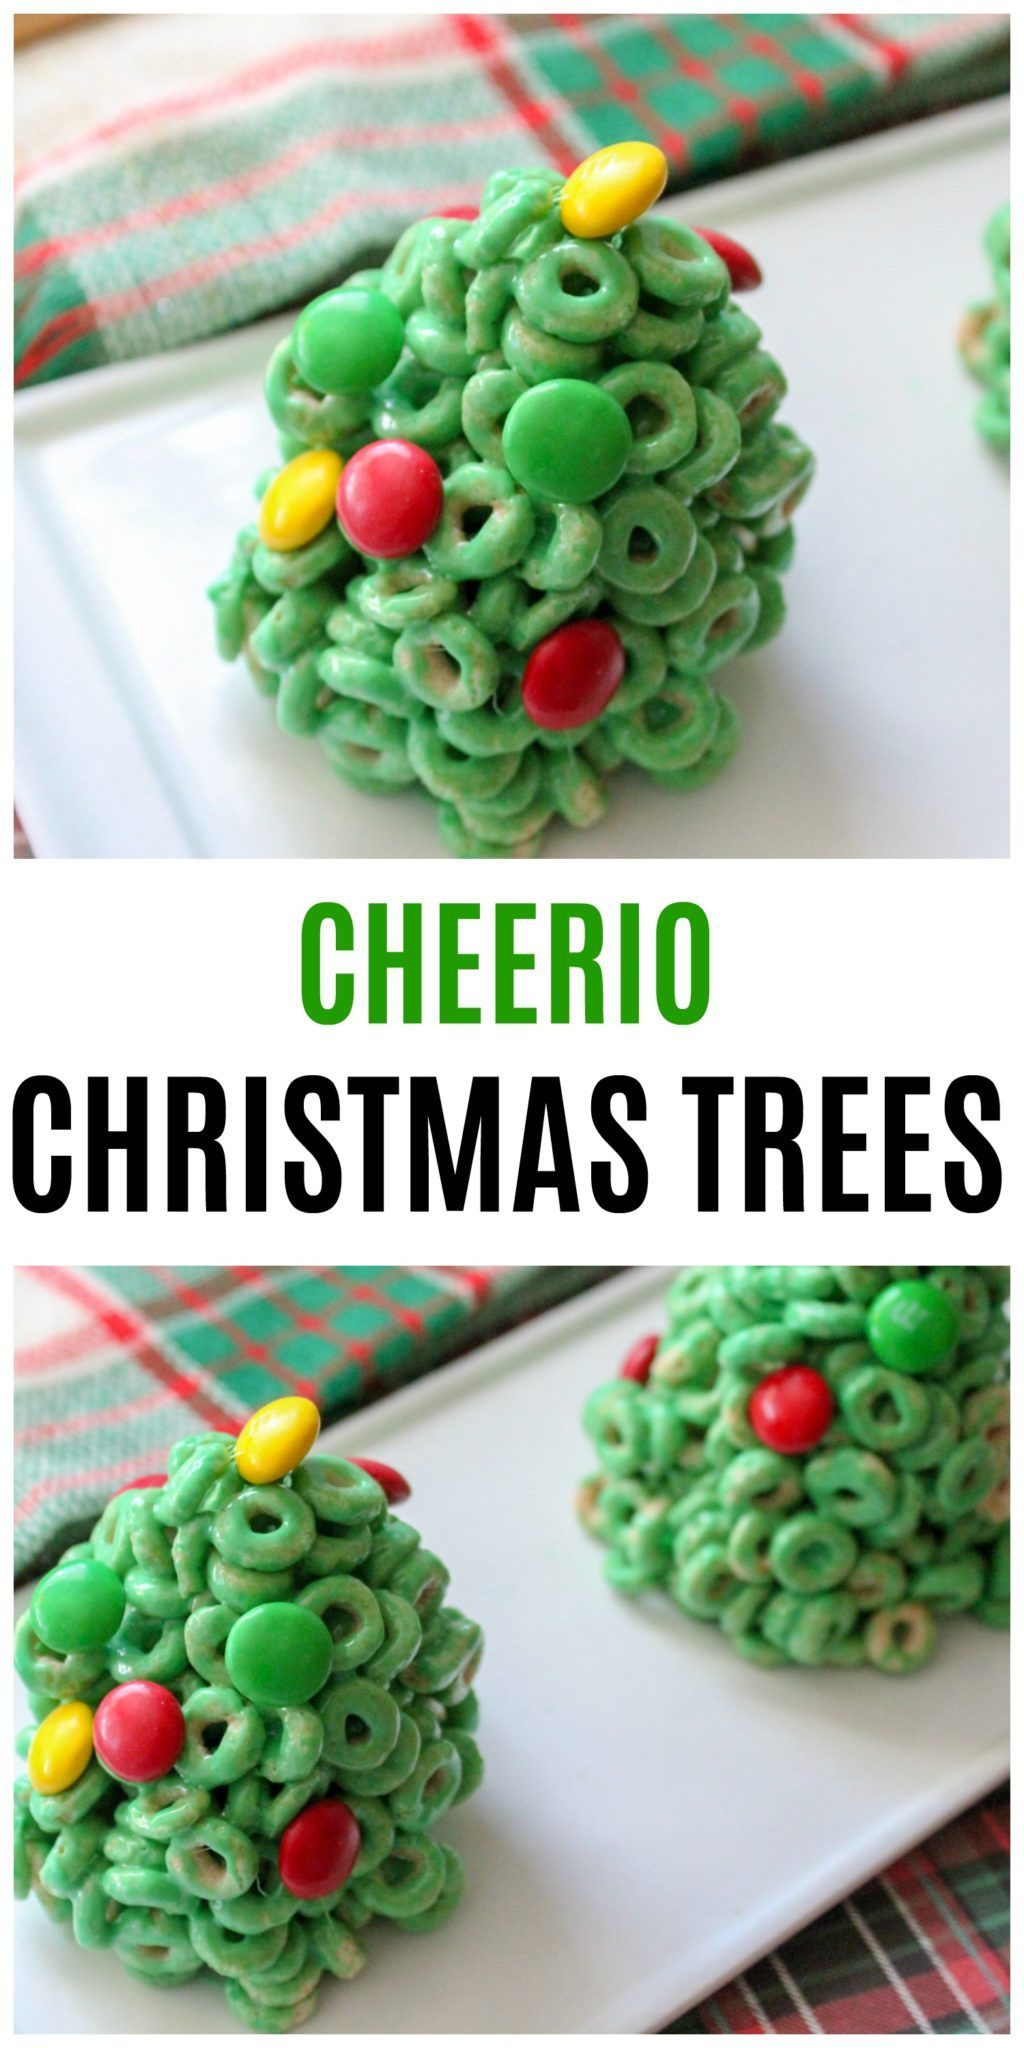 Cheerio Christmas Trees Recipe Makes a Great Holiday Snack